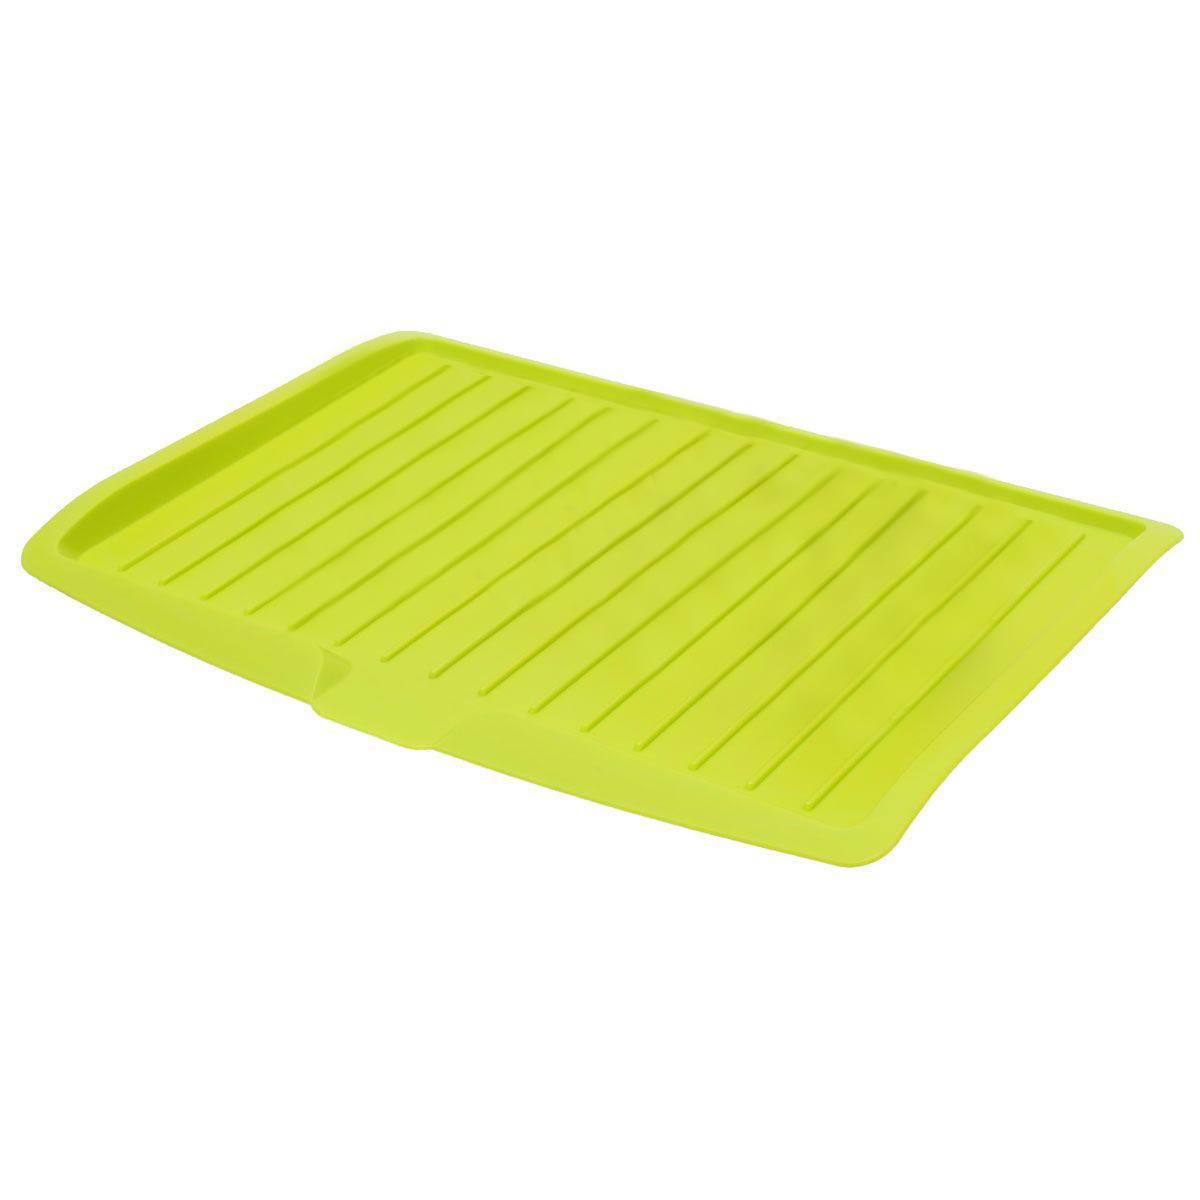 Plastic Dish Drainer Drip Tray Plate Cutlery Rack Kitchen ...